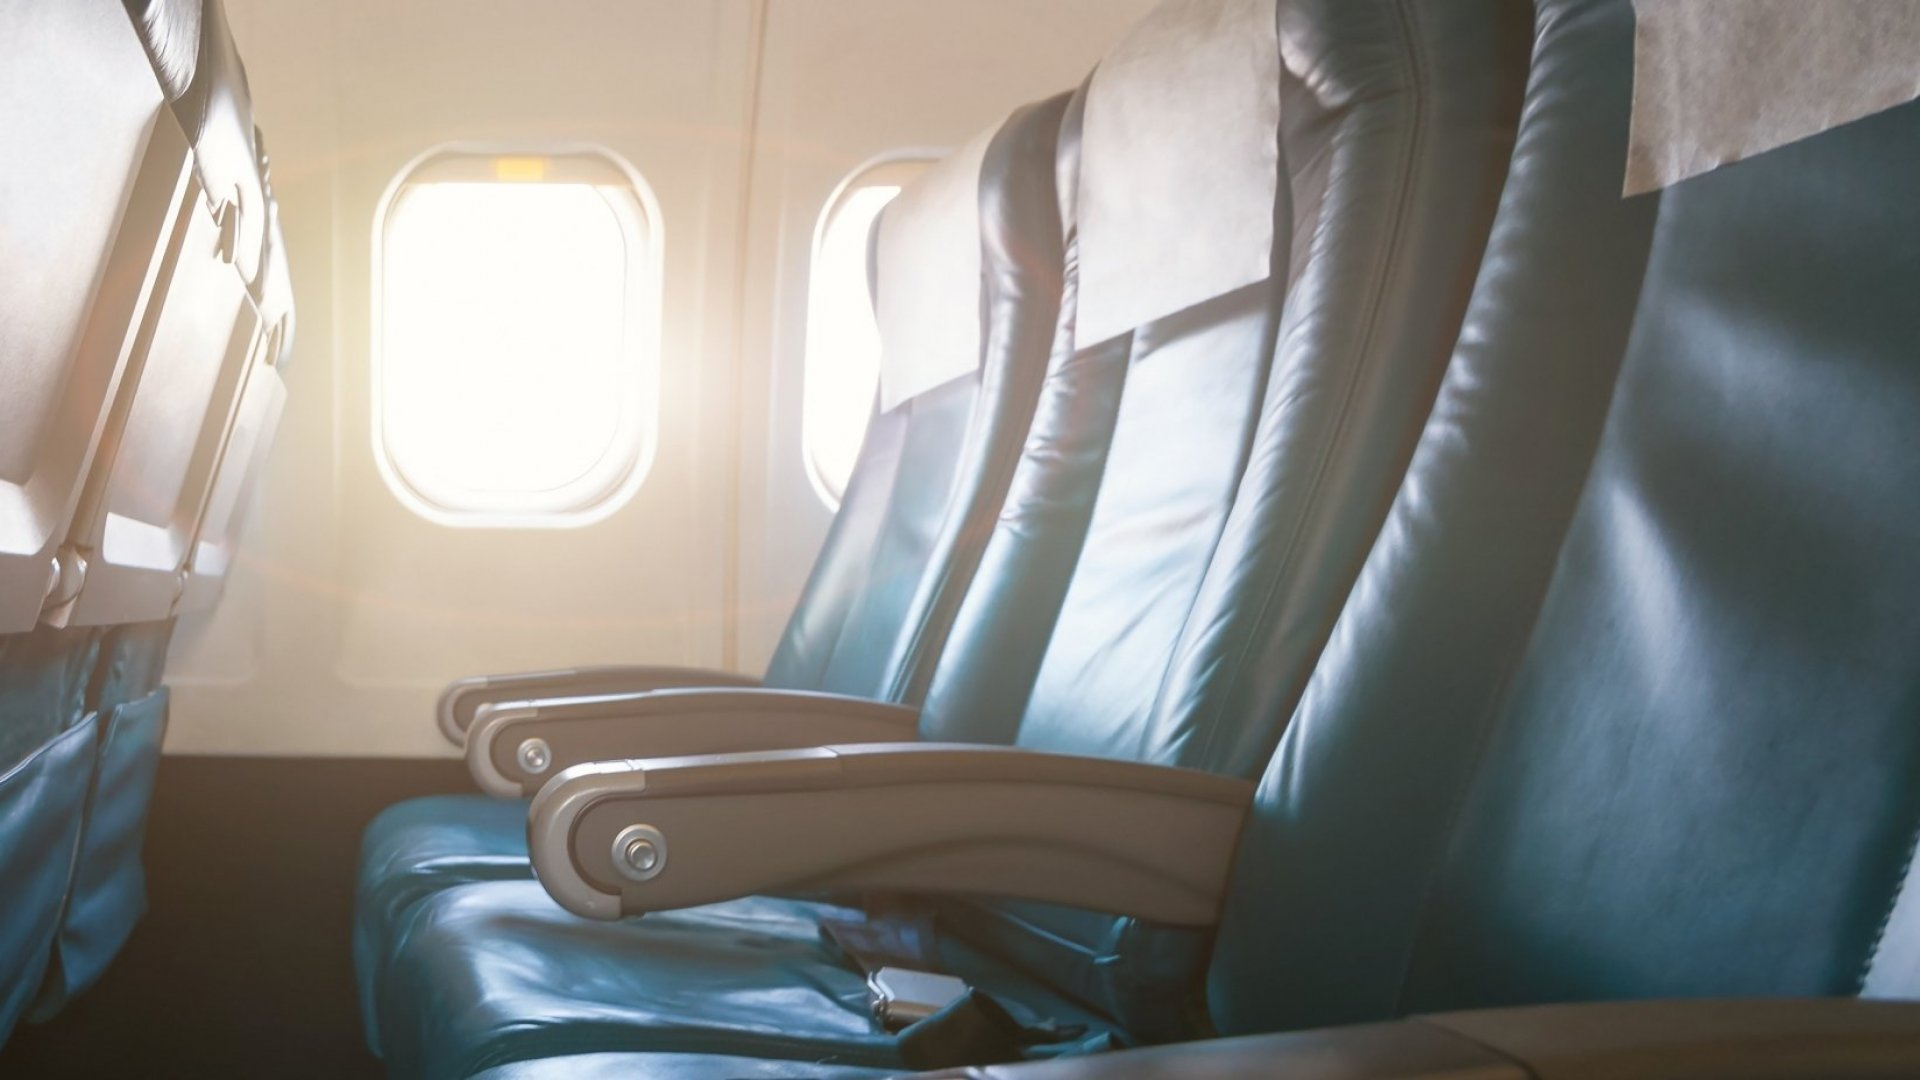 You want to avoid that middle seat at all costs, right?